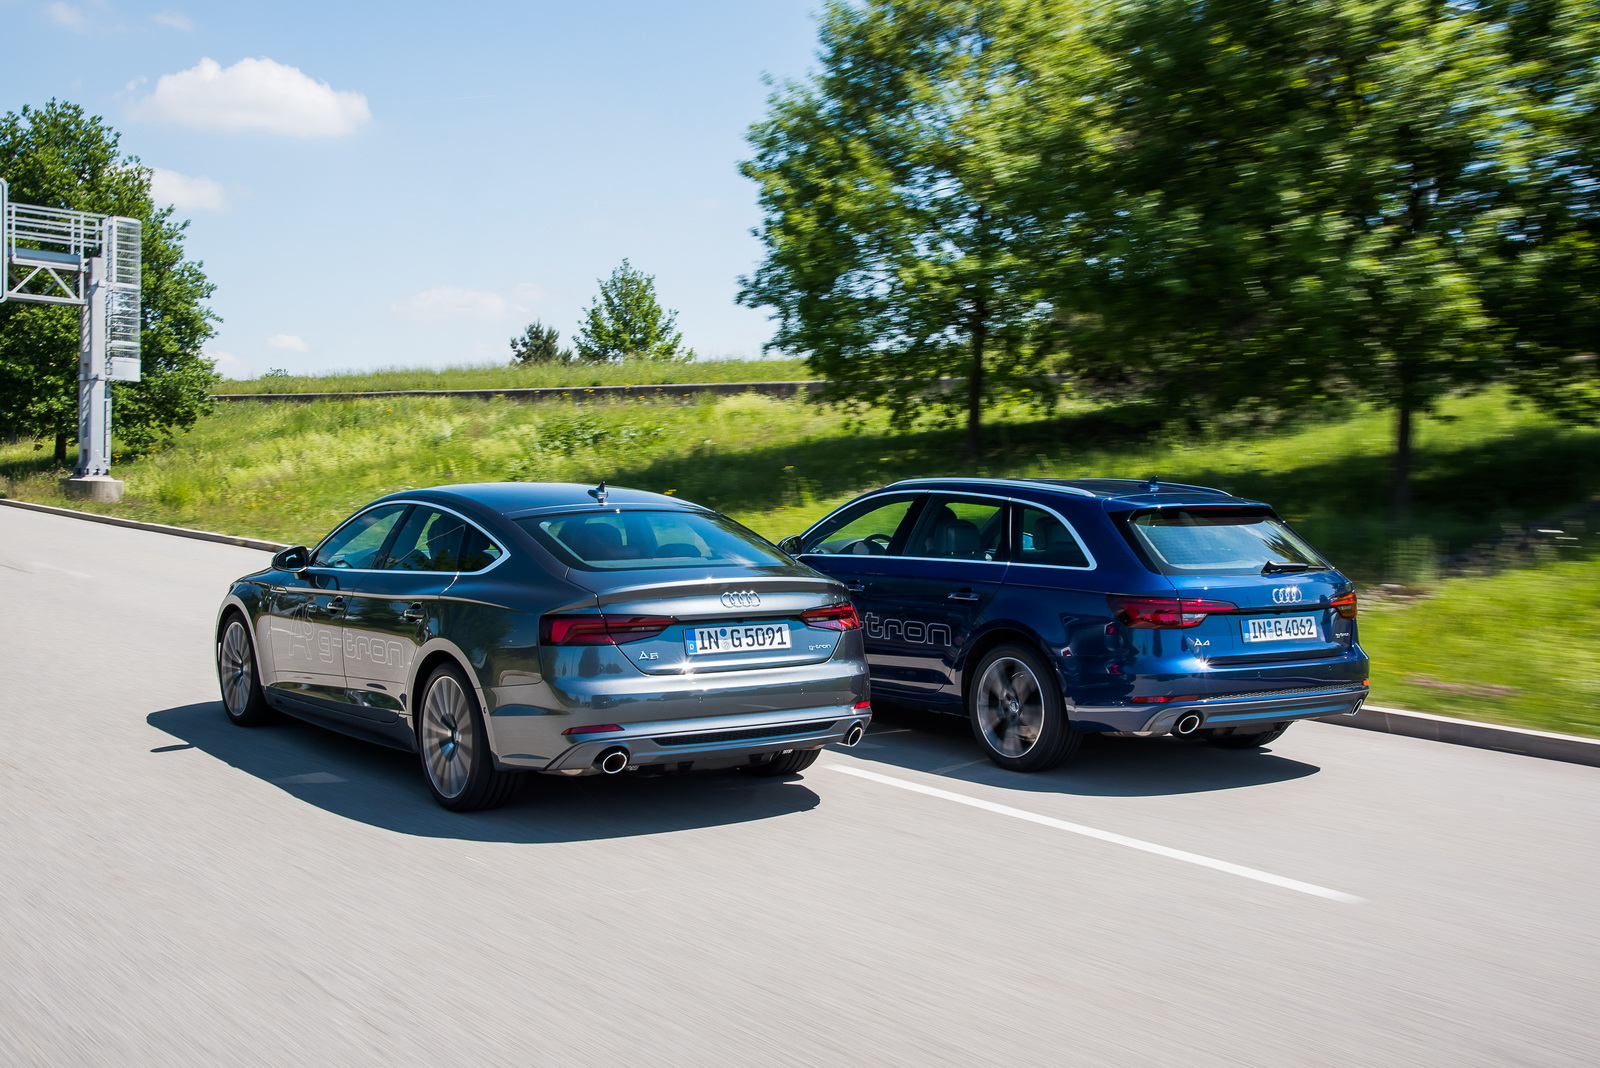 Audi A5 Sportback g-tron dynamic photo, colour: daytona greyAudi A4 Avant g-tron dynamic photo, colour: scuba blue